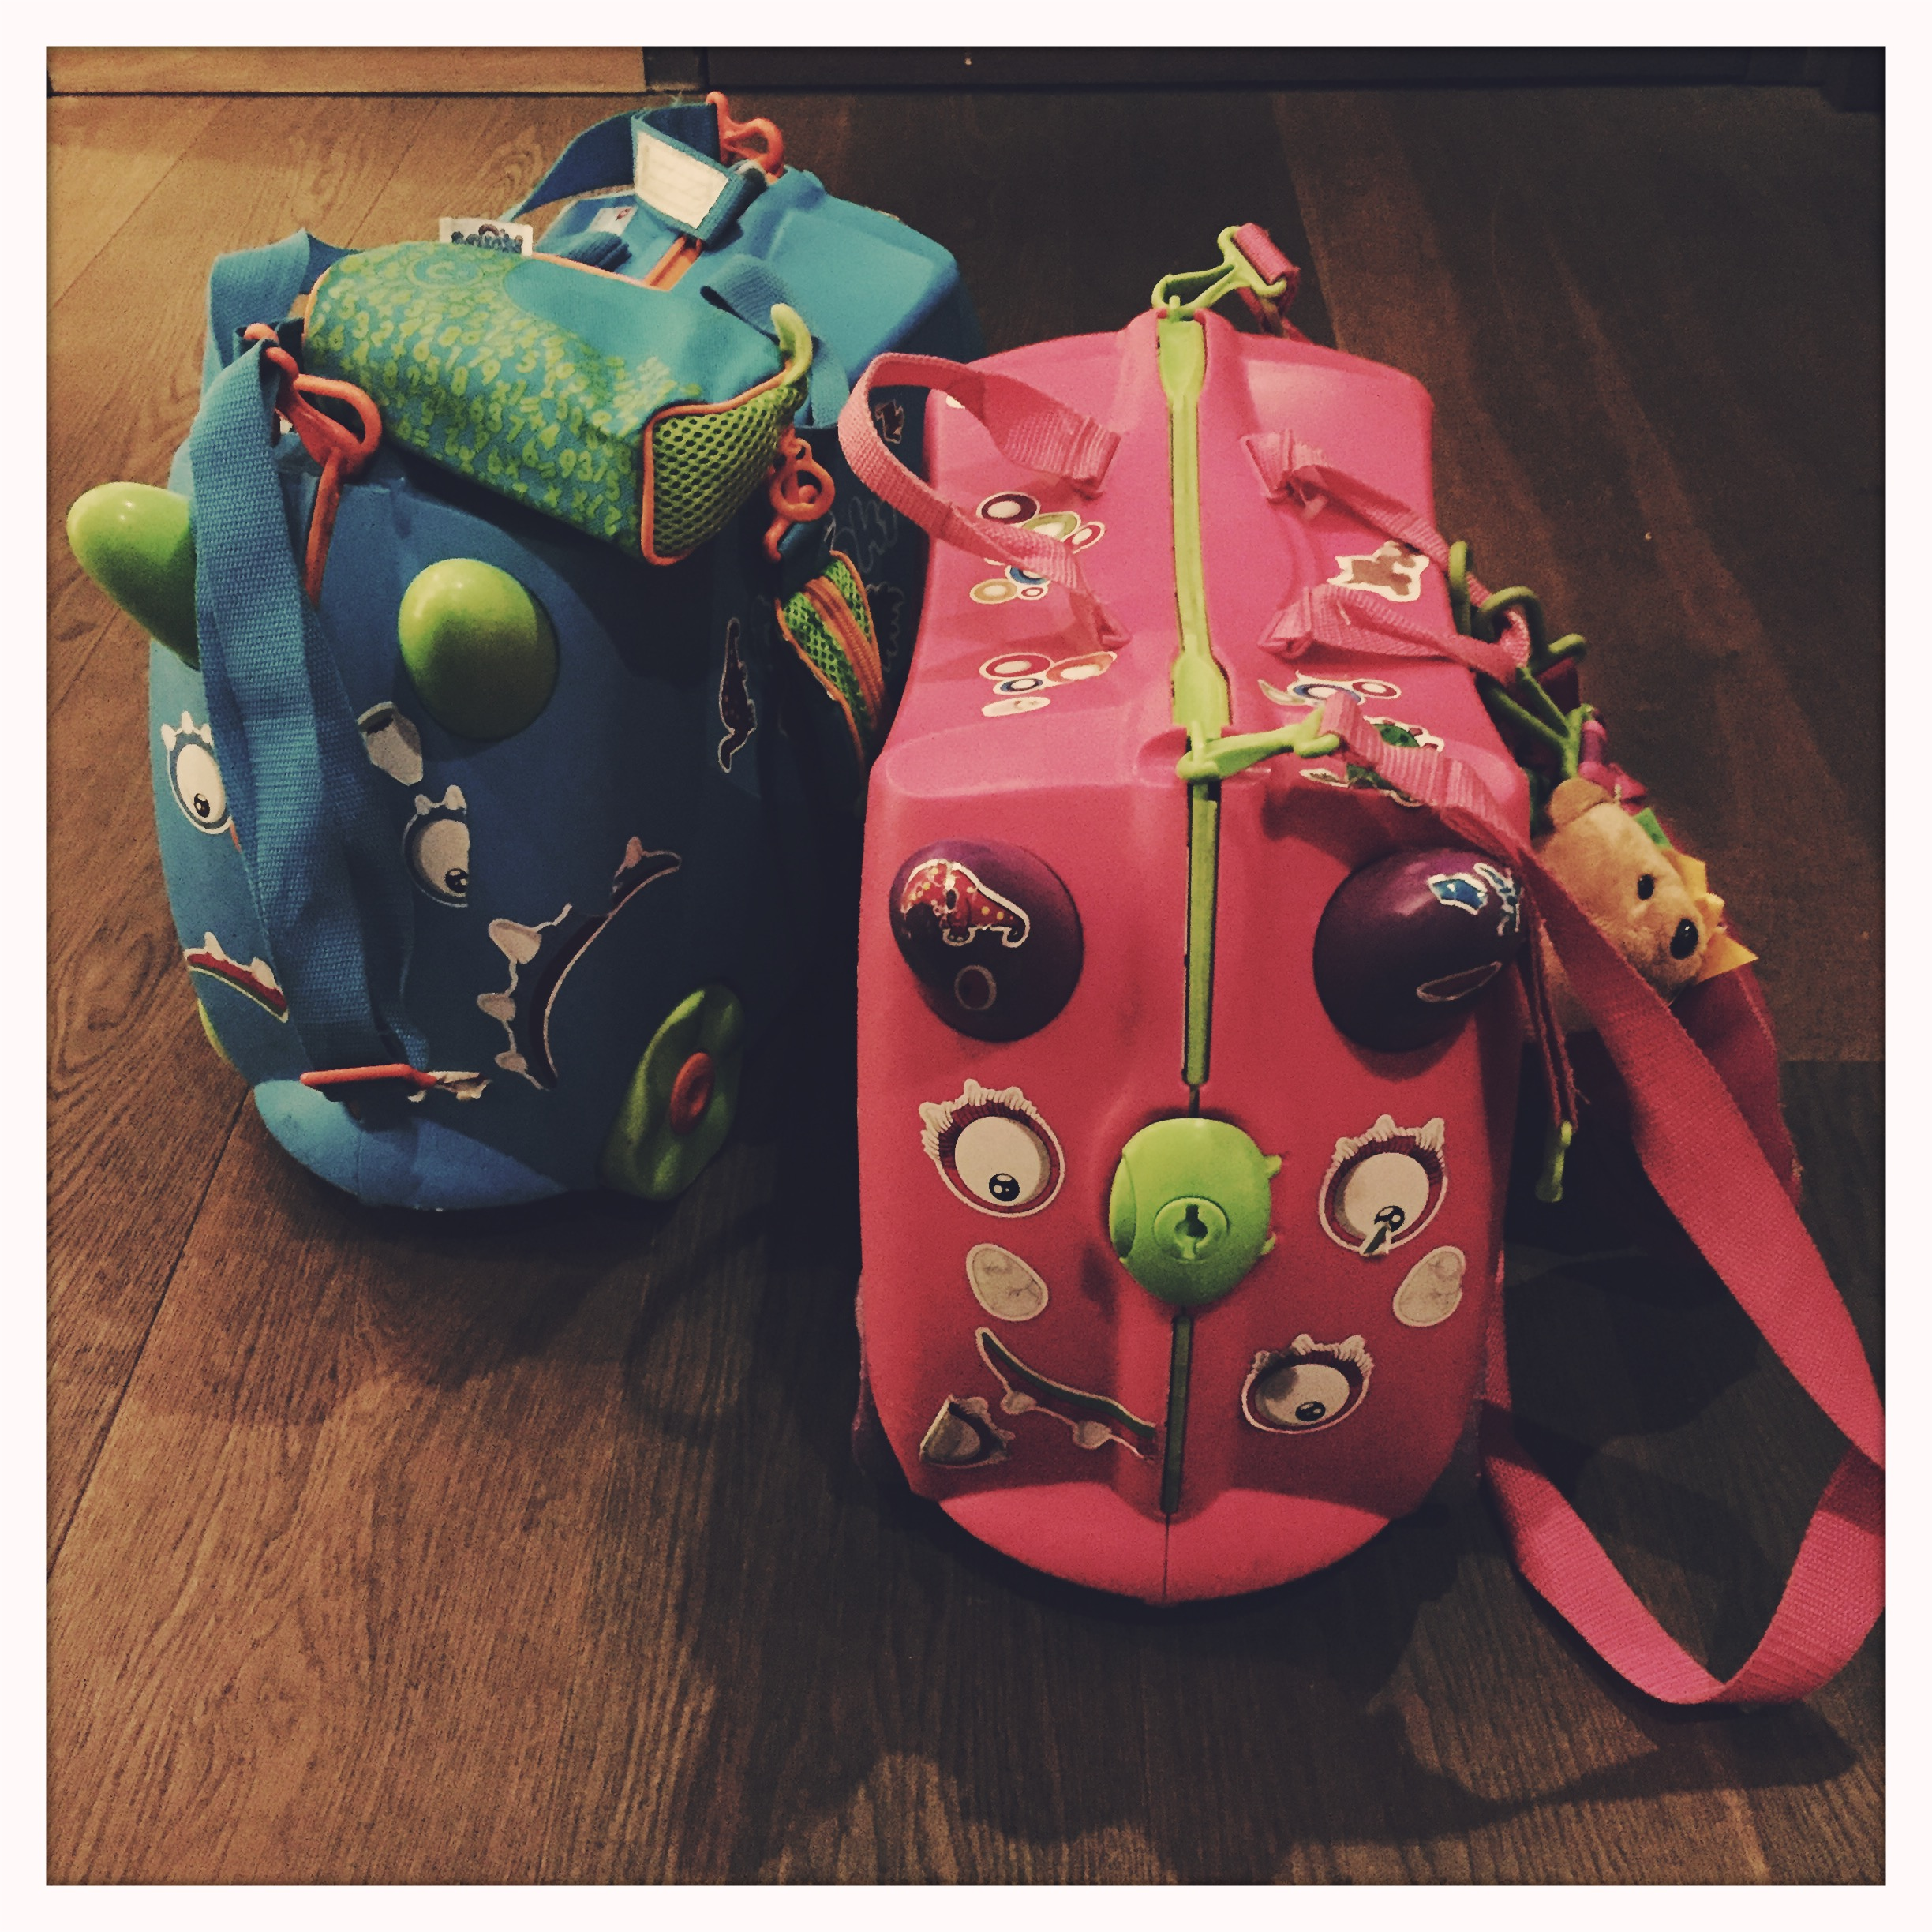 Our Trunki's may be a bit warn but they've done 1000's of miles and rock and rolled our kids around many an airport.